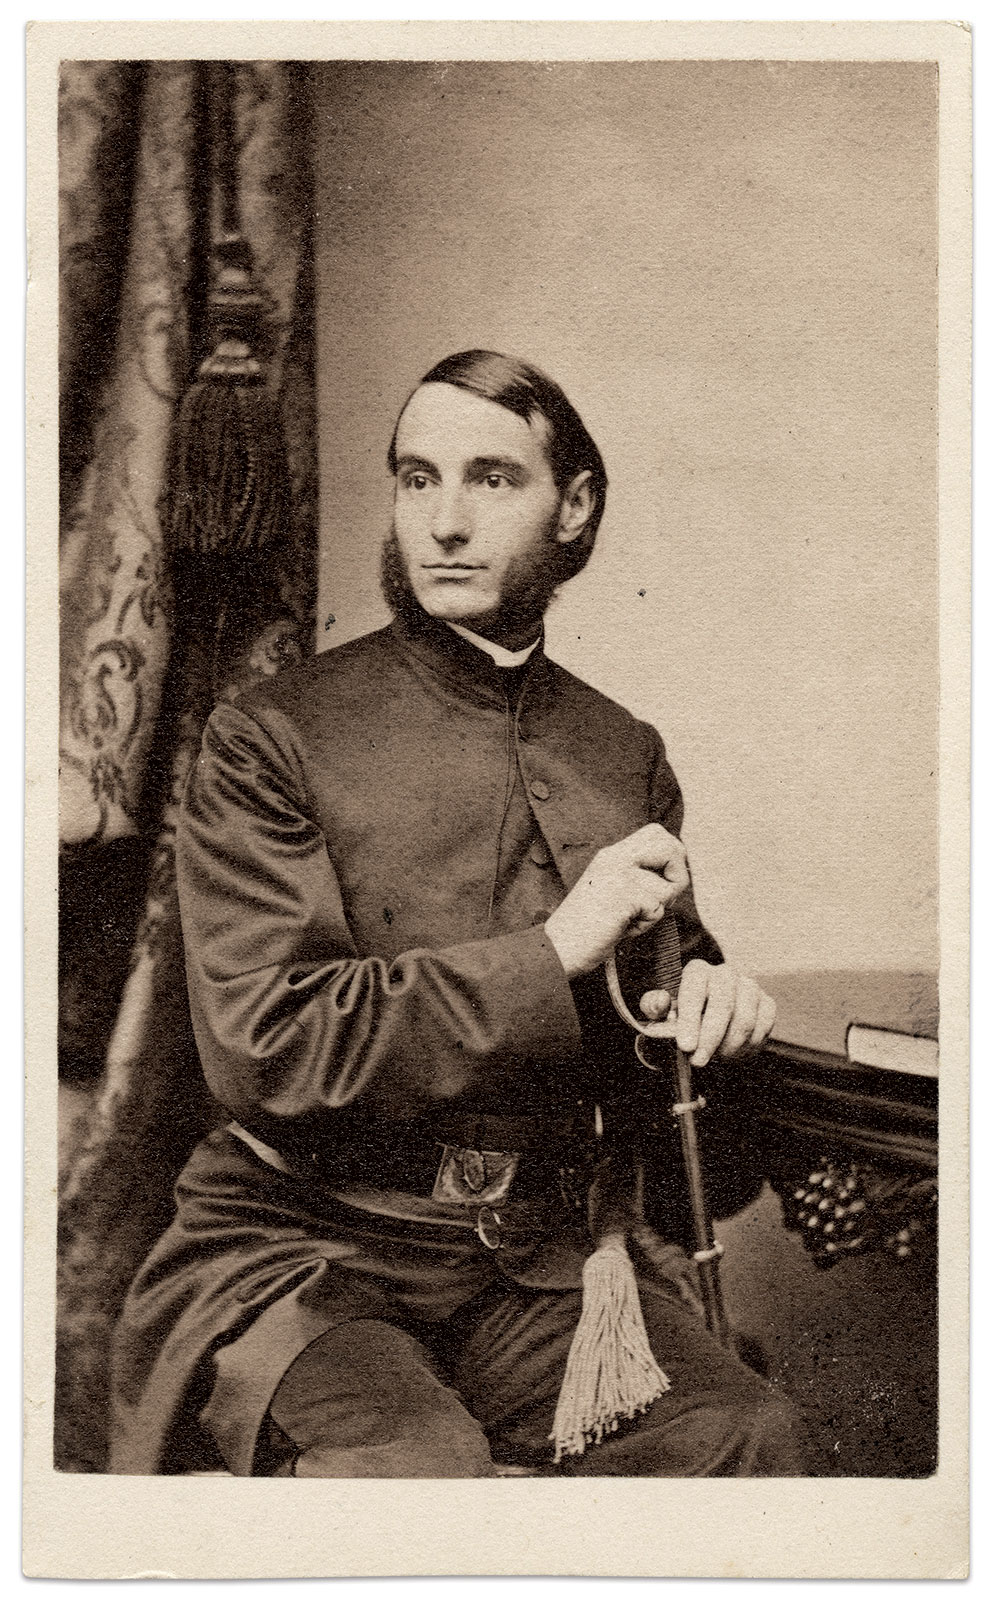 Carte de visite by F.L. Lay of Boston, Mass. Paul Russinoff Collection.